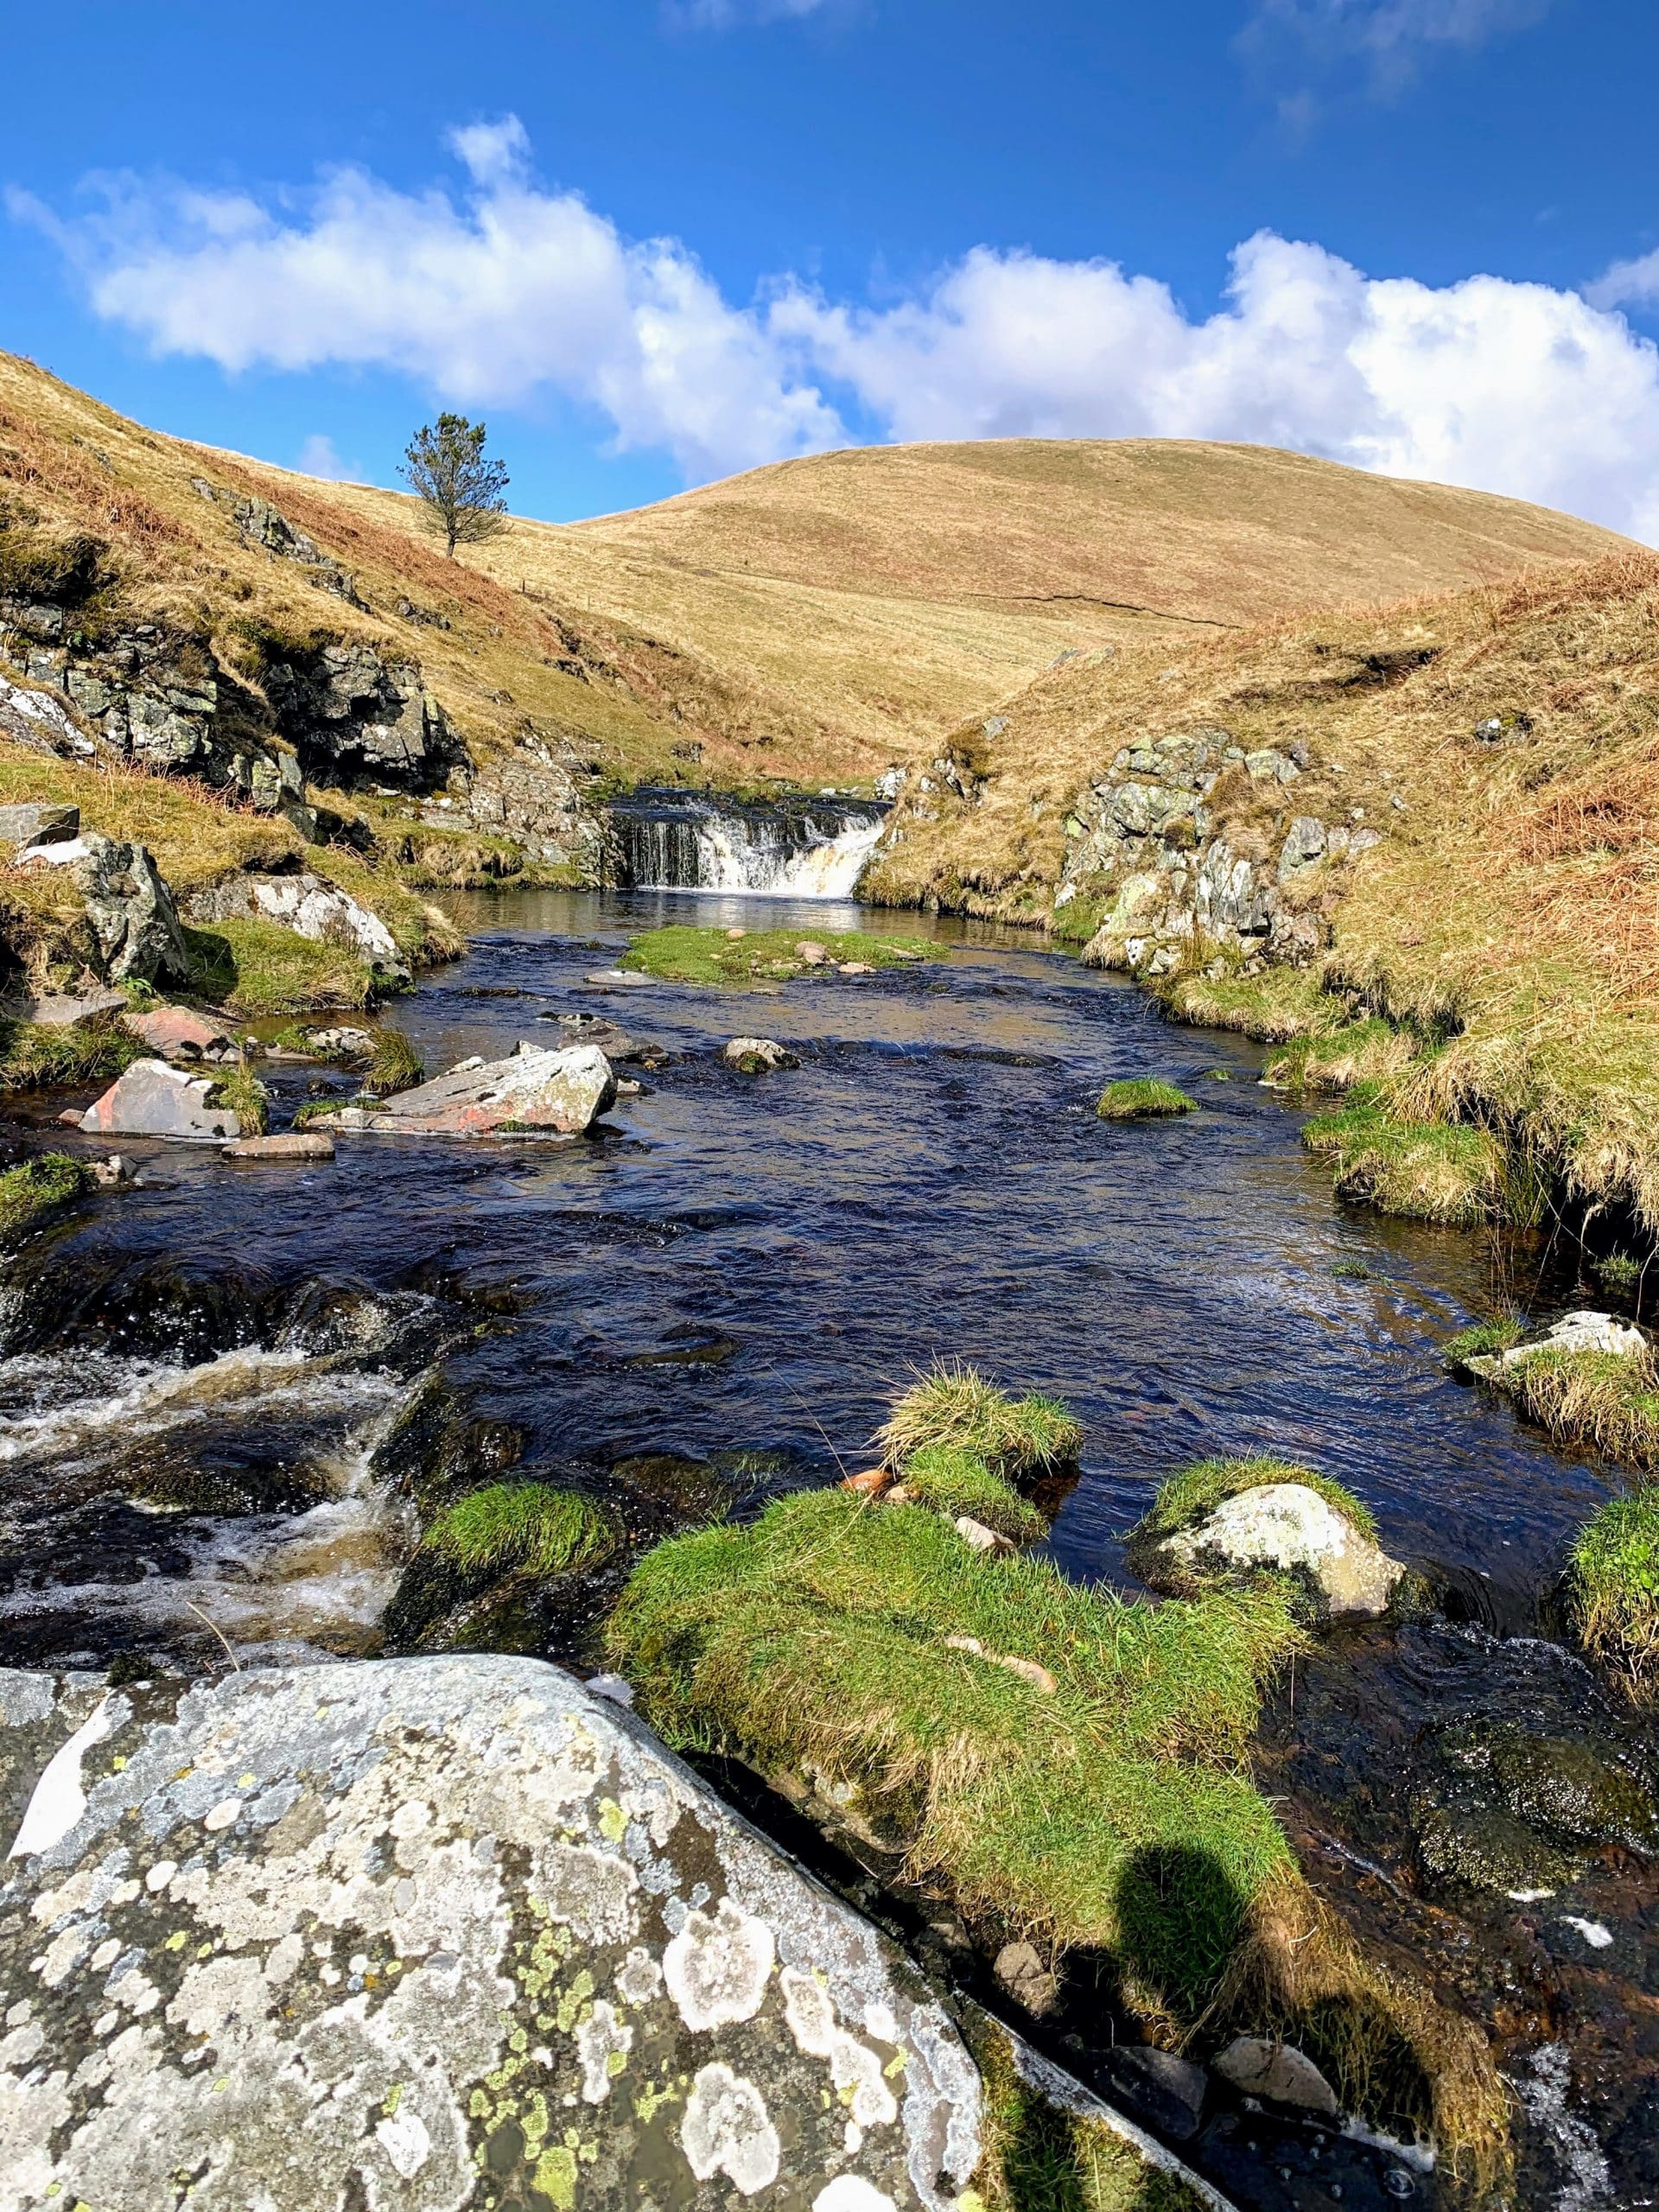 A small waterfall feeding into a Northumbrian river.